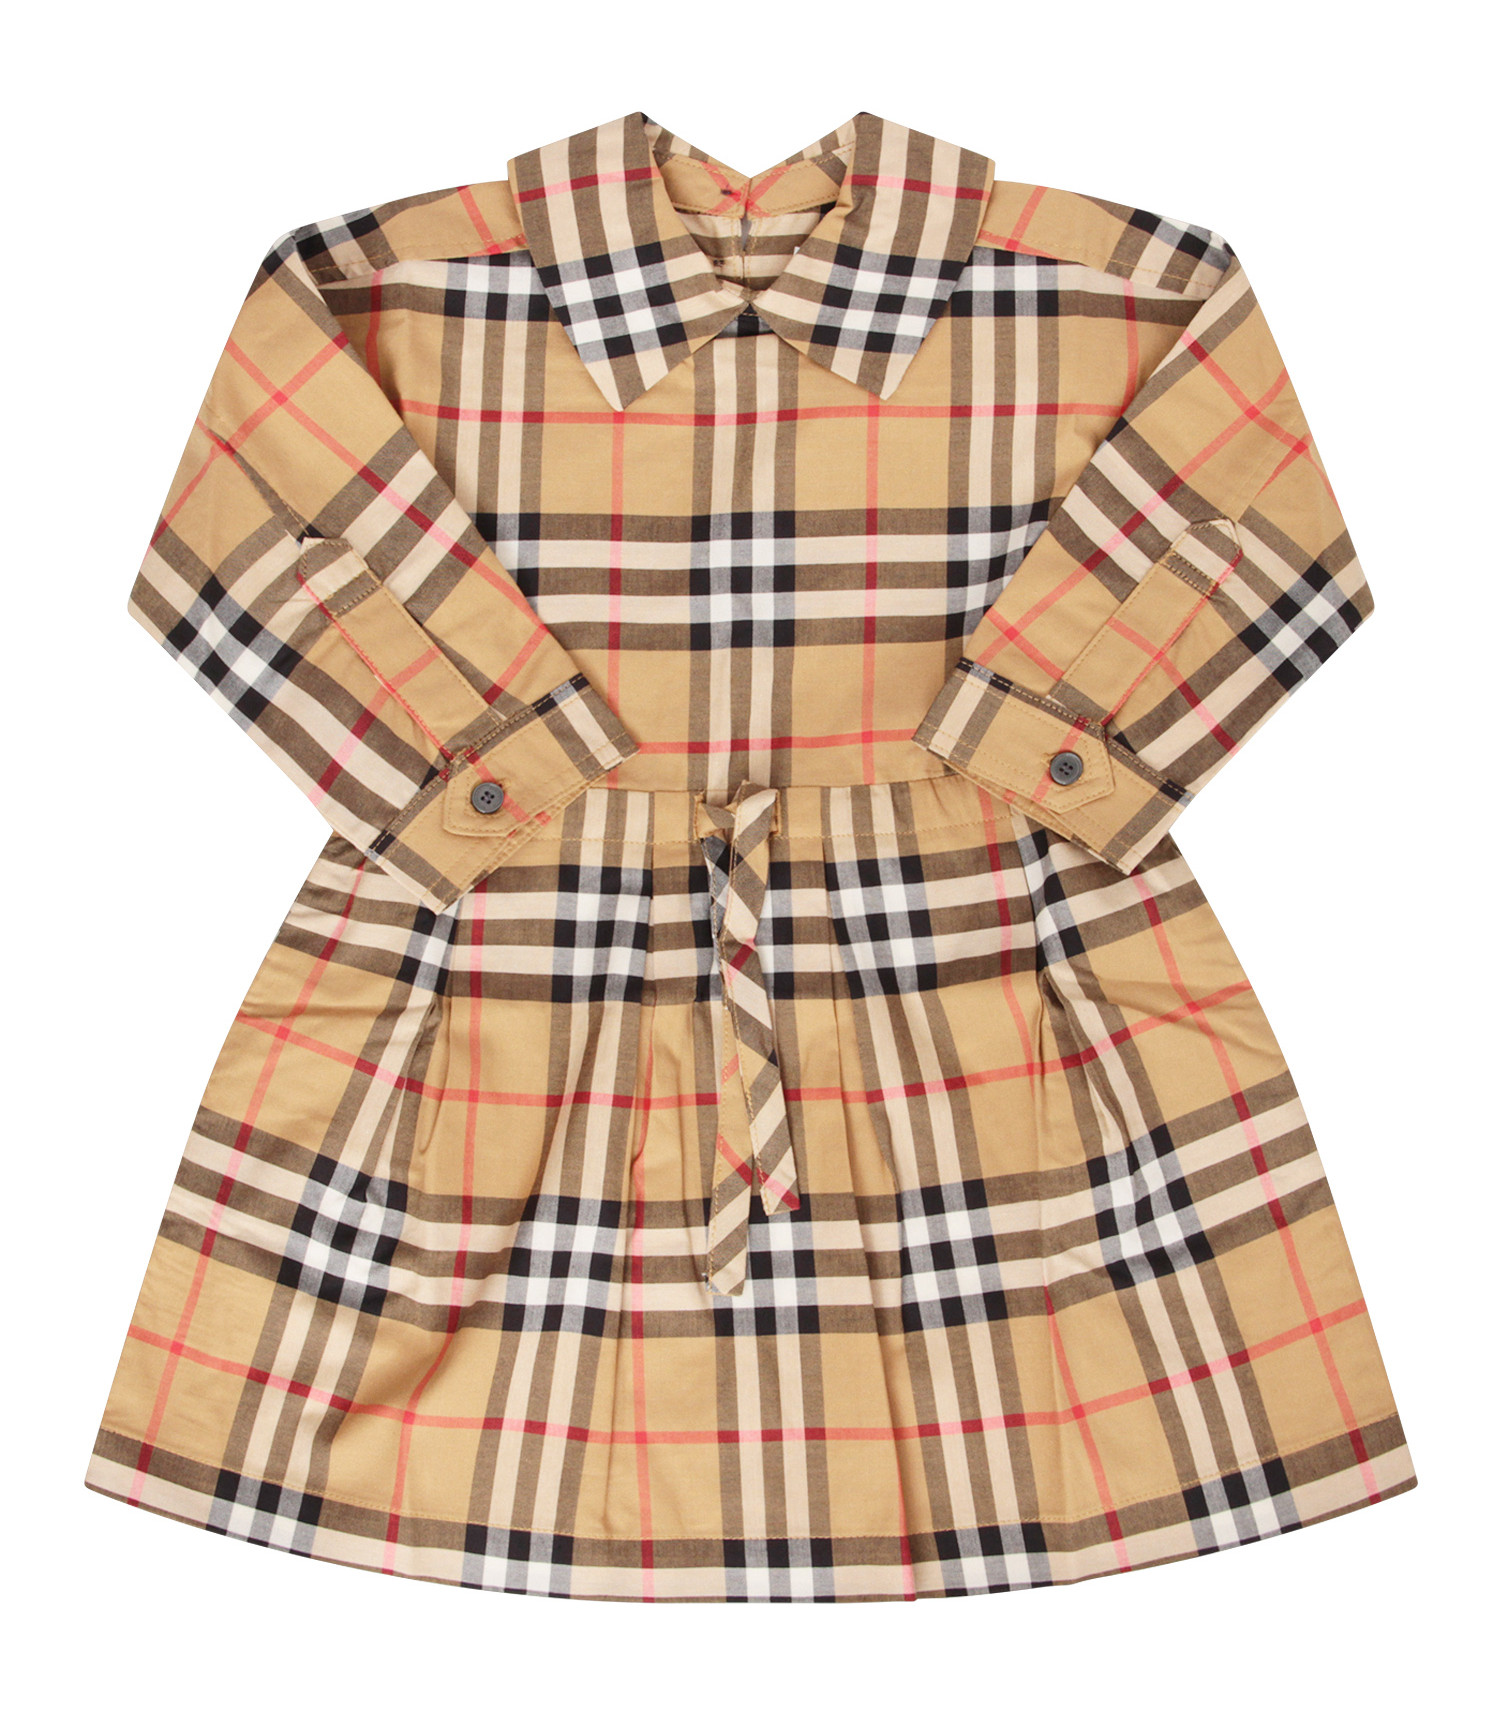 Burberry Kids Abito bambina beige con coulisse